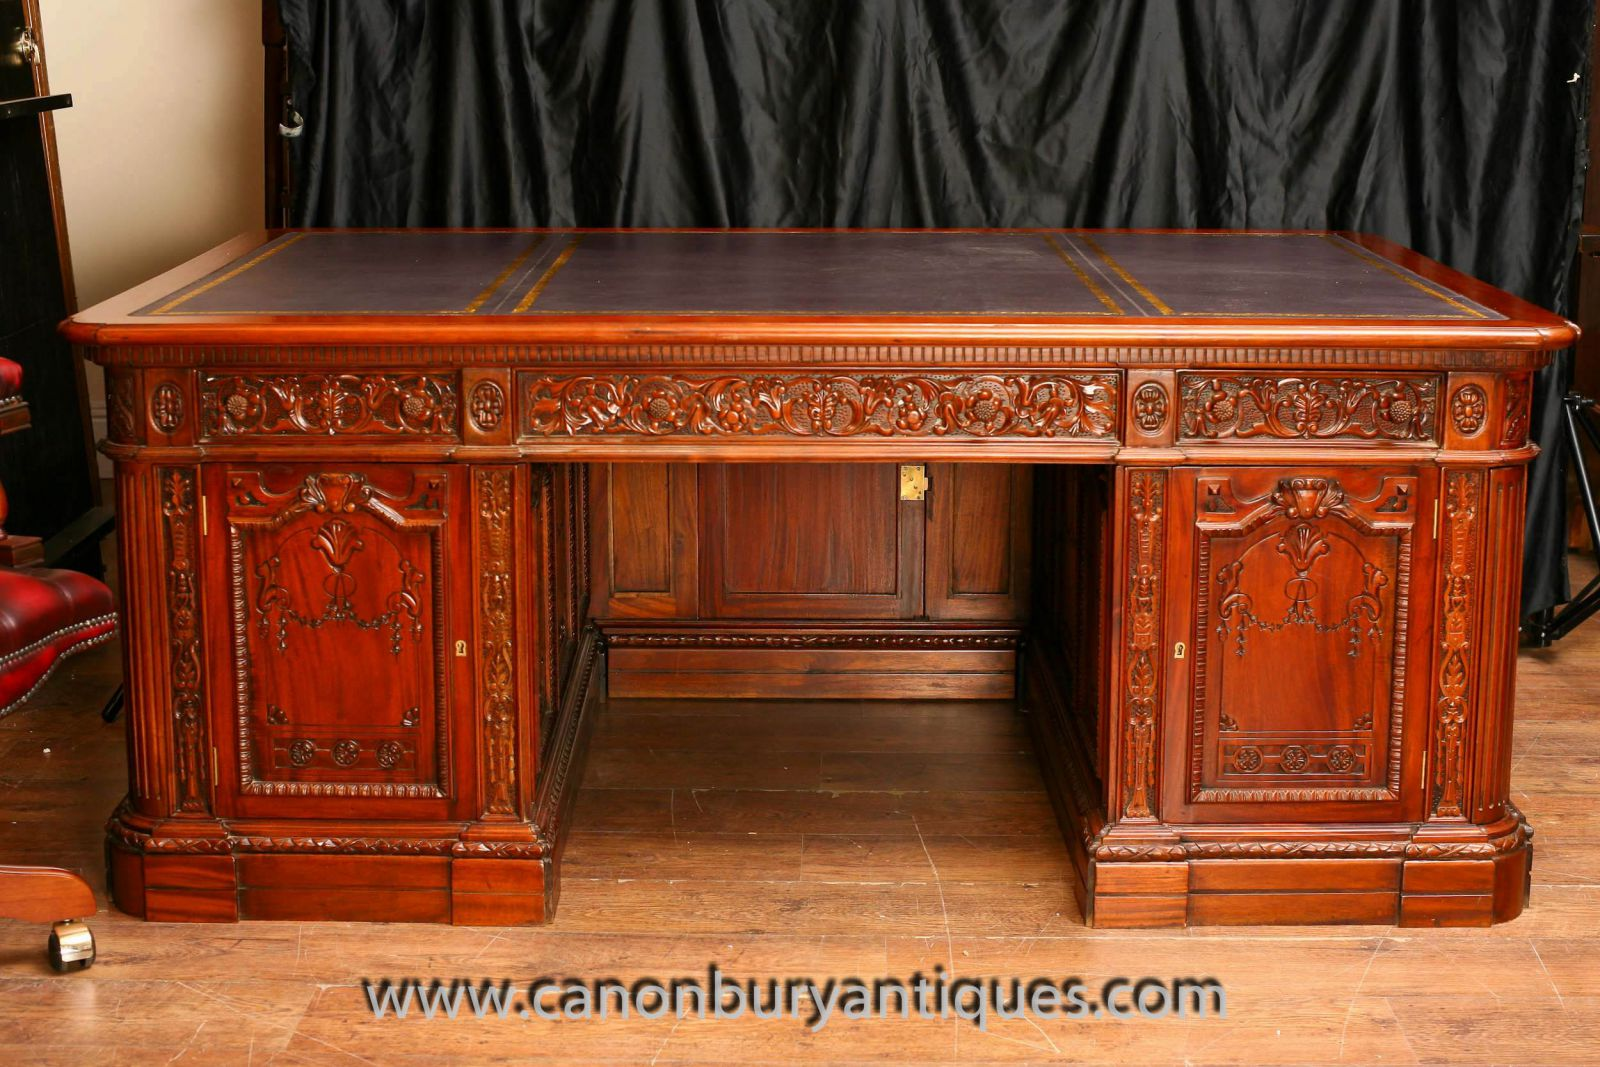 American Presidents Desk Oval Office White House www_canonburyantiques_com (4)-2-2